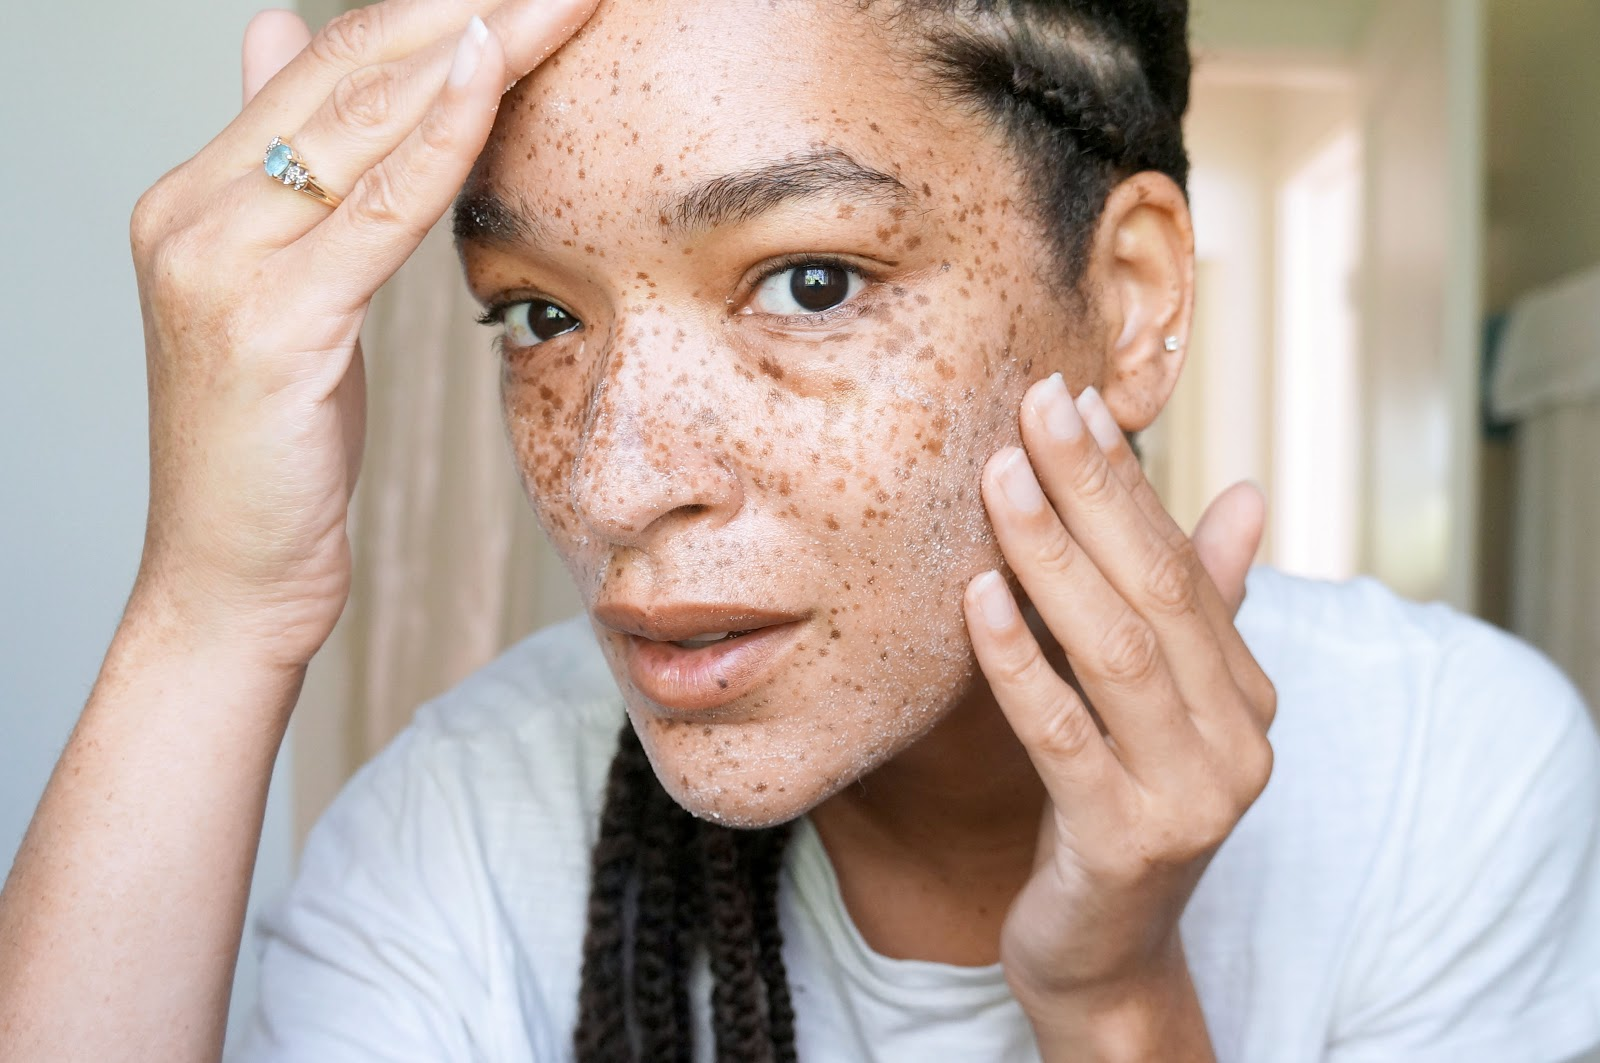 The case for exfoliating nikia phoenix it used to be that exfoliating was a once a week kind of thing but now experts say it really depends on your skin type if youre acne prone ccuart Choice Image